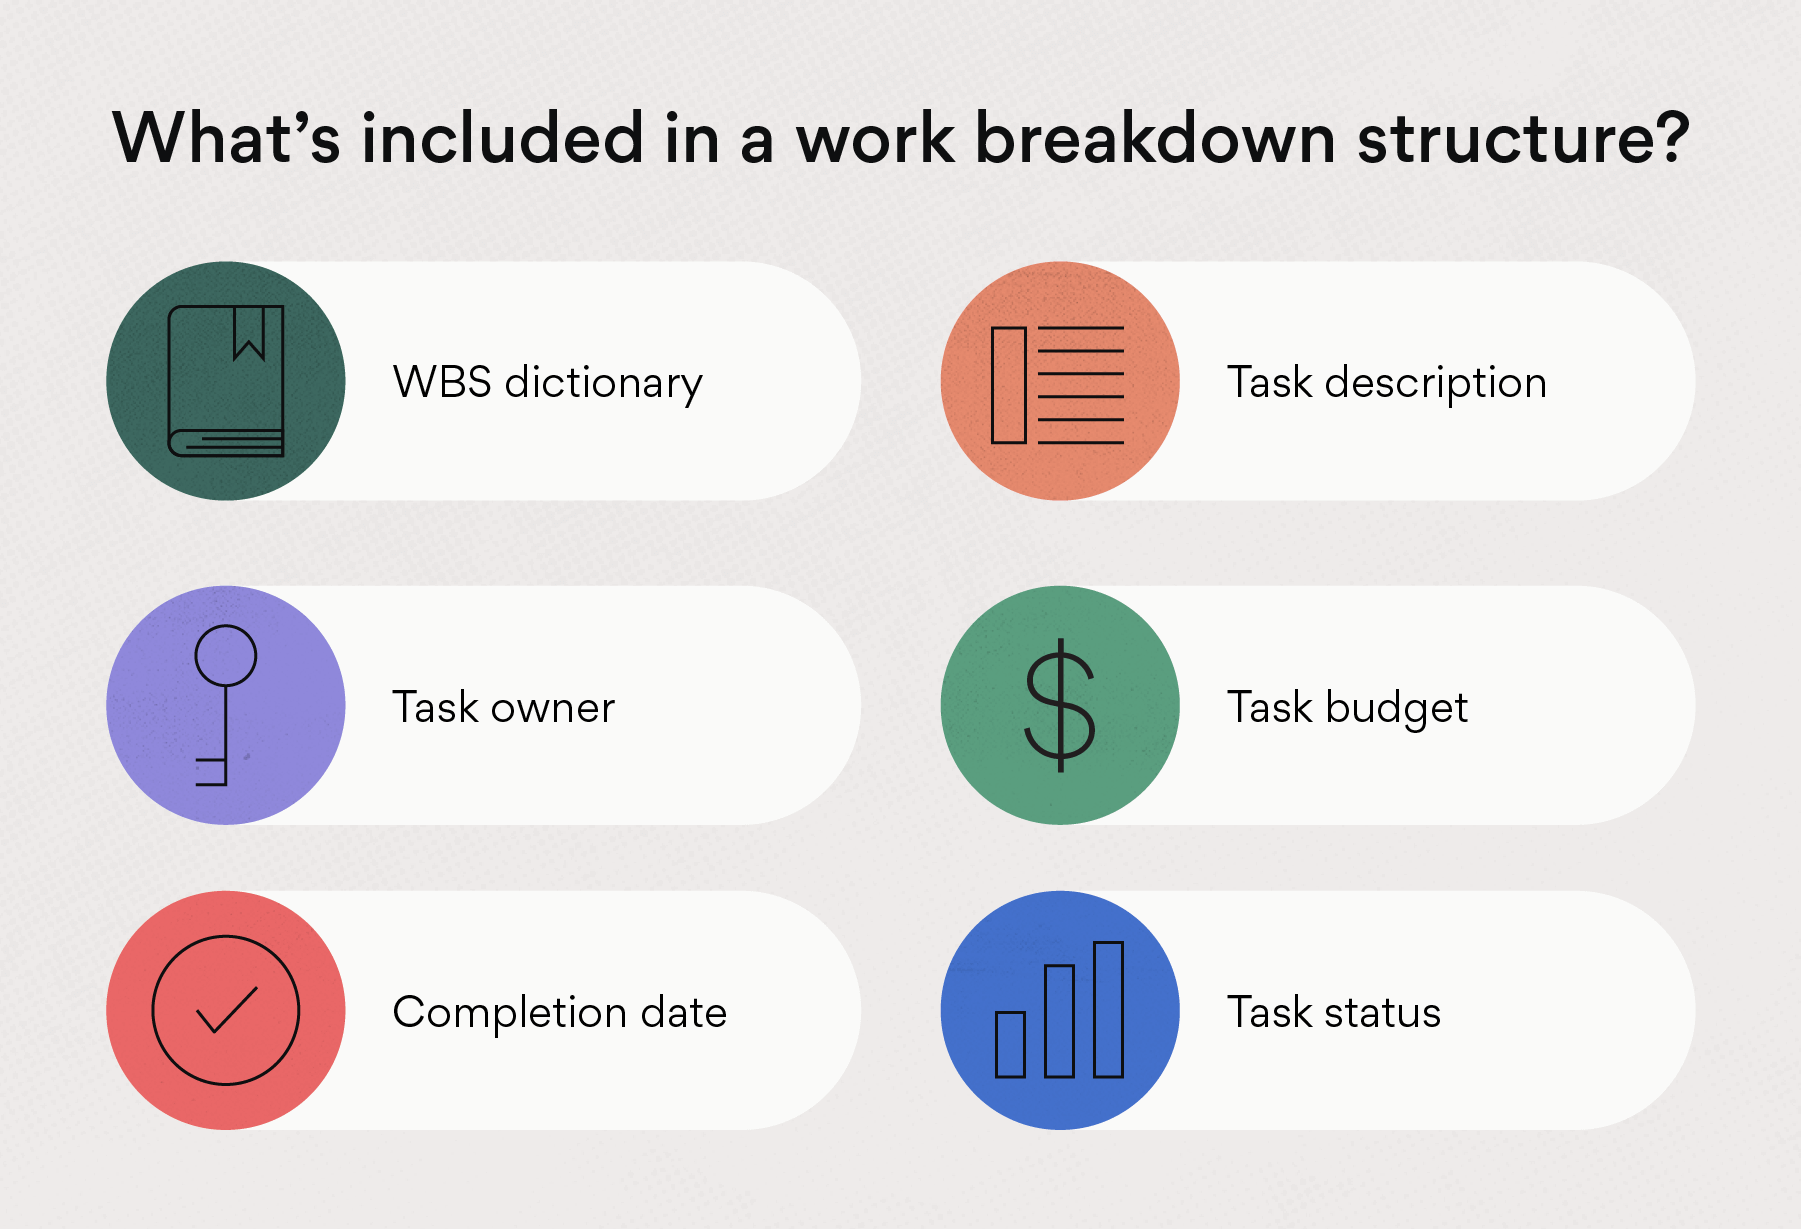 What's included in a work breakdown structure